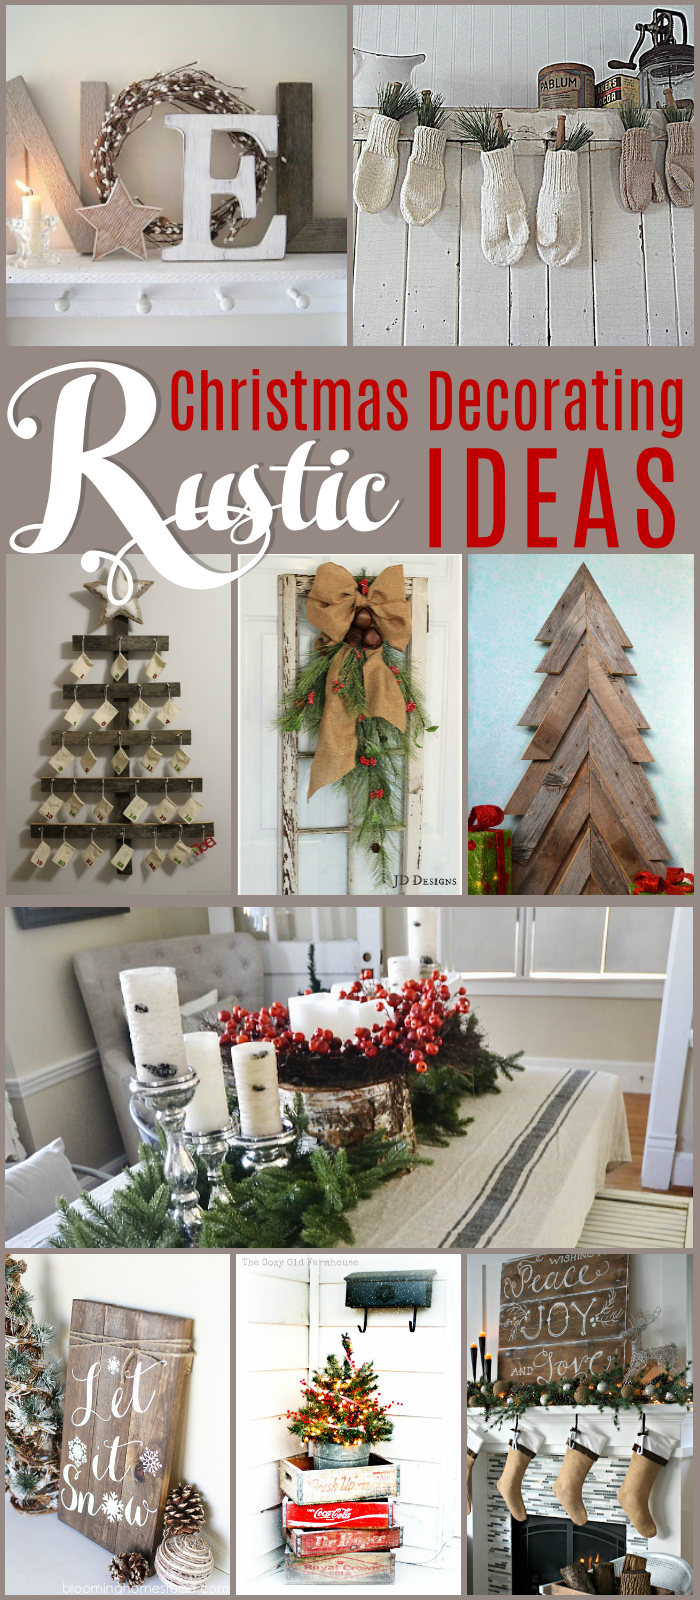 Link party no 72 new name alert the girl creative for Decorate christmas ideas your home